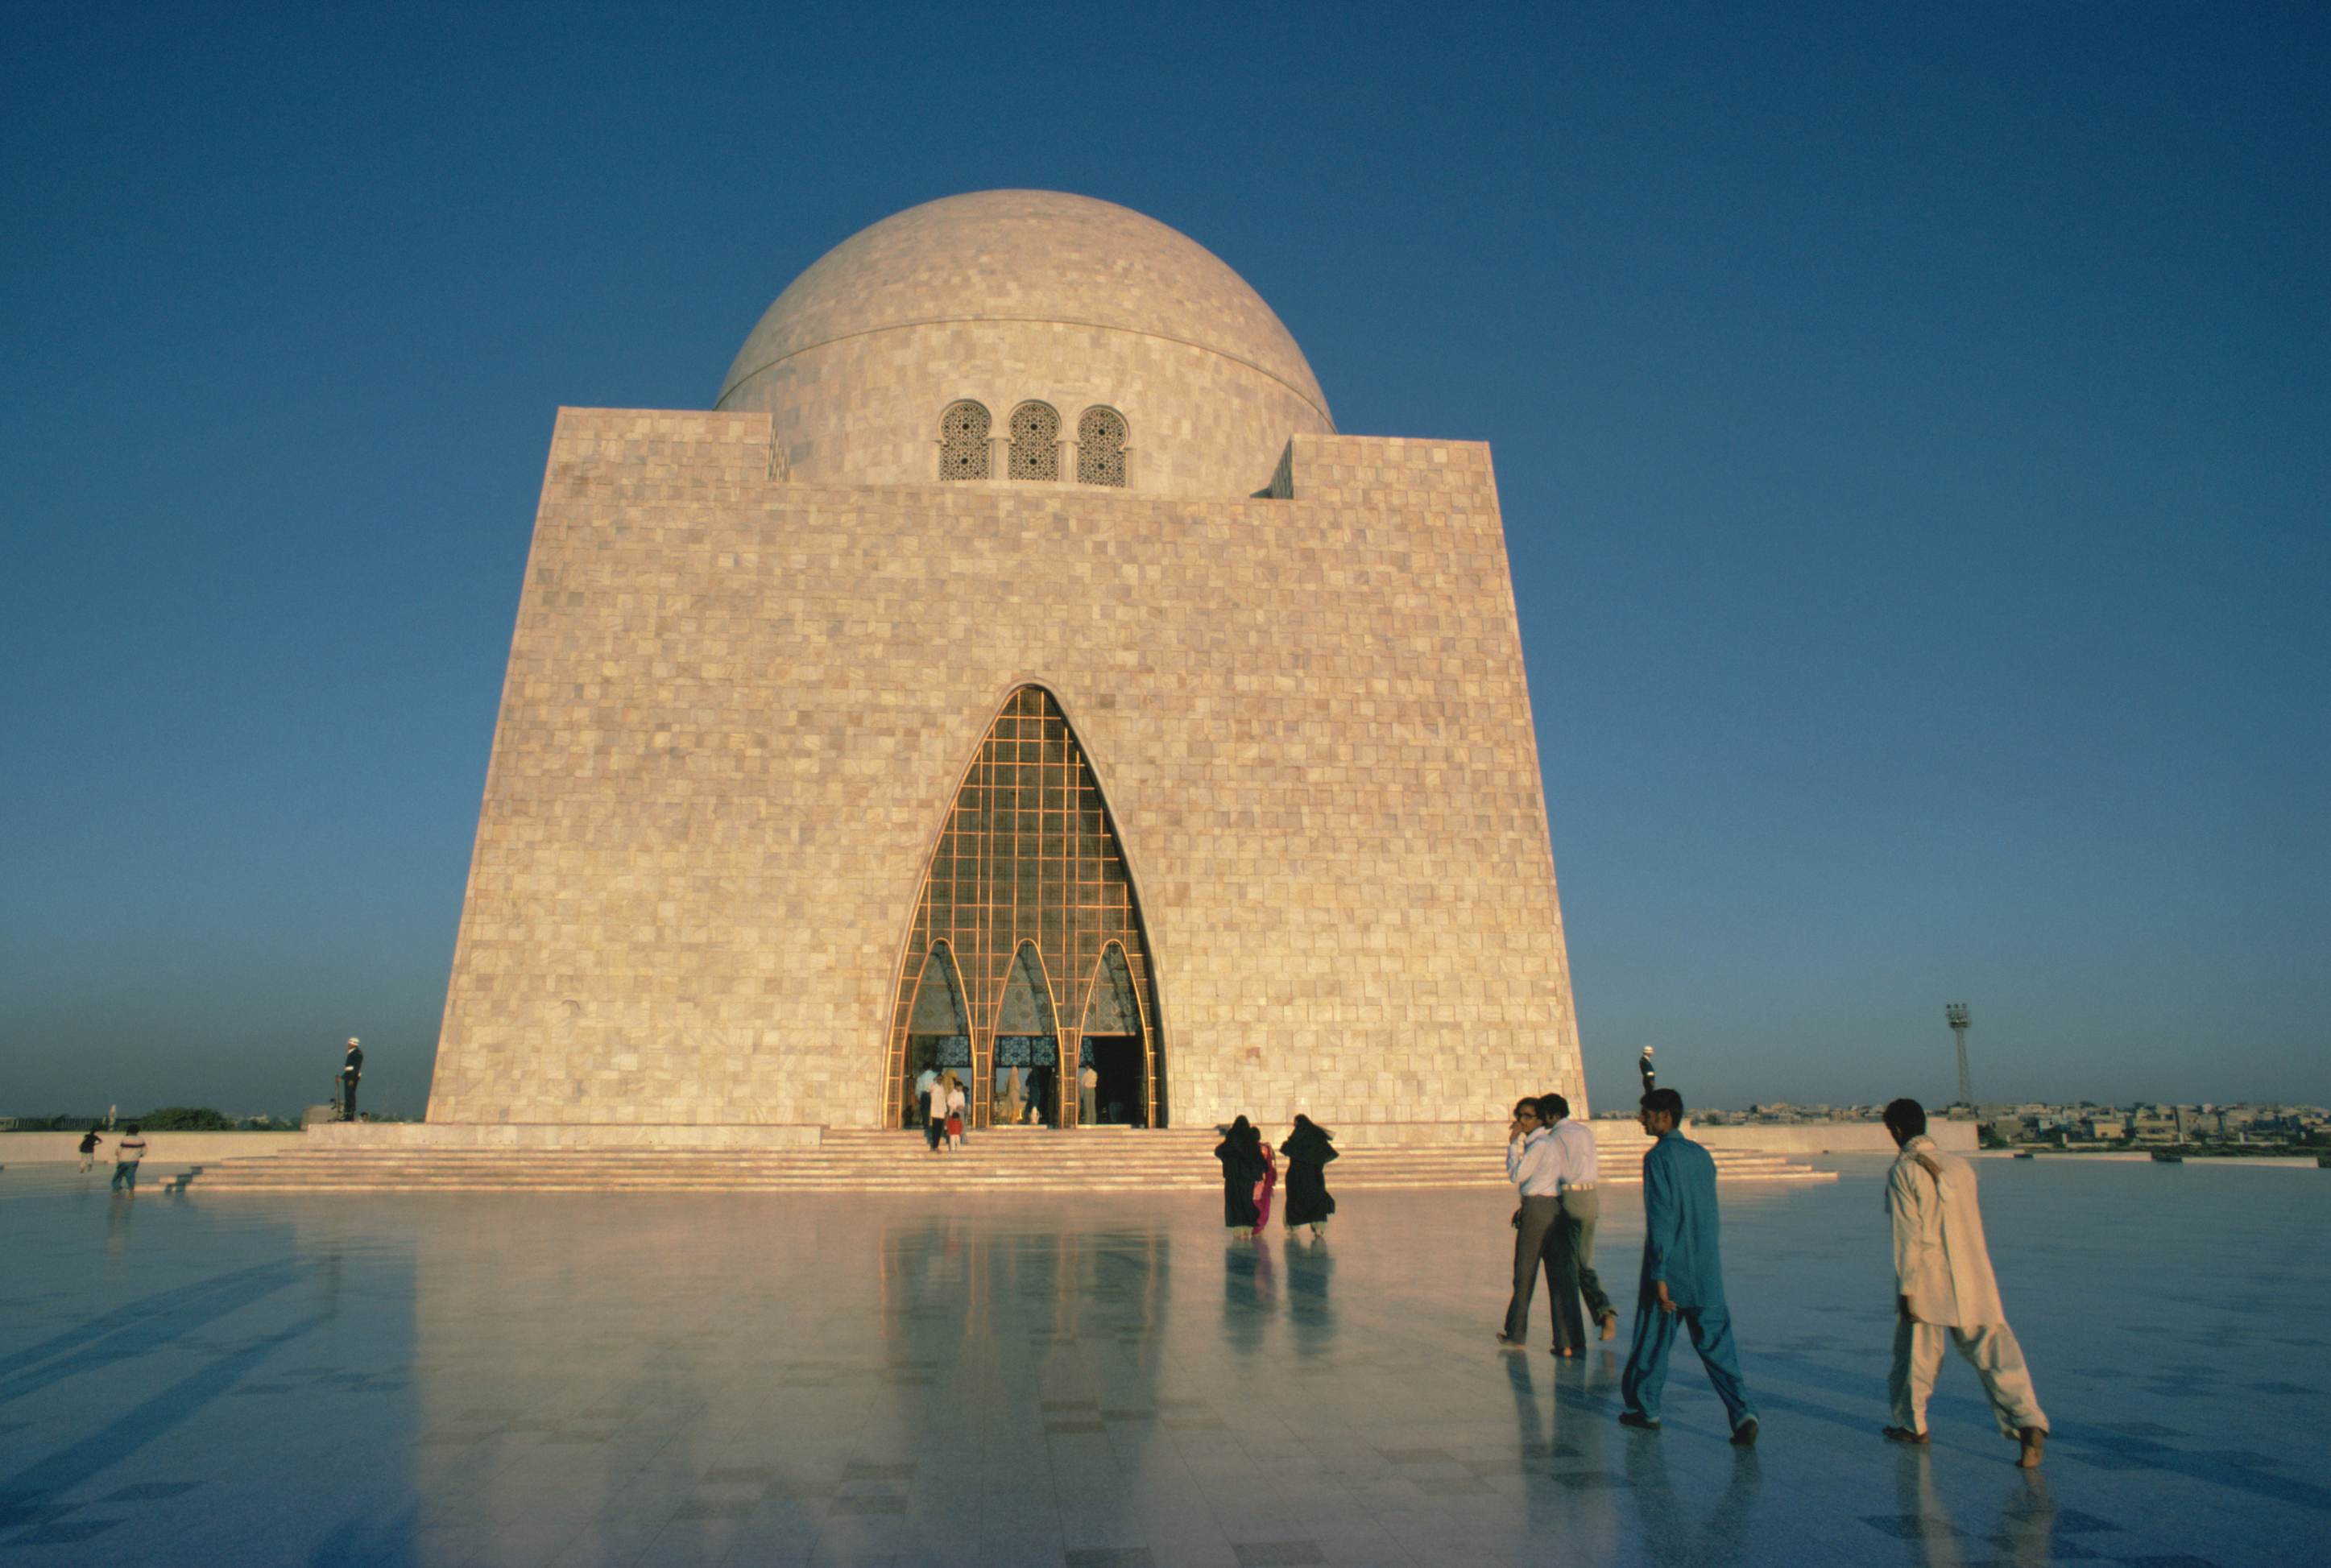 Quaid I Azam Mausoleum Karachi Pakistan Attractions